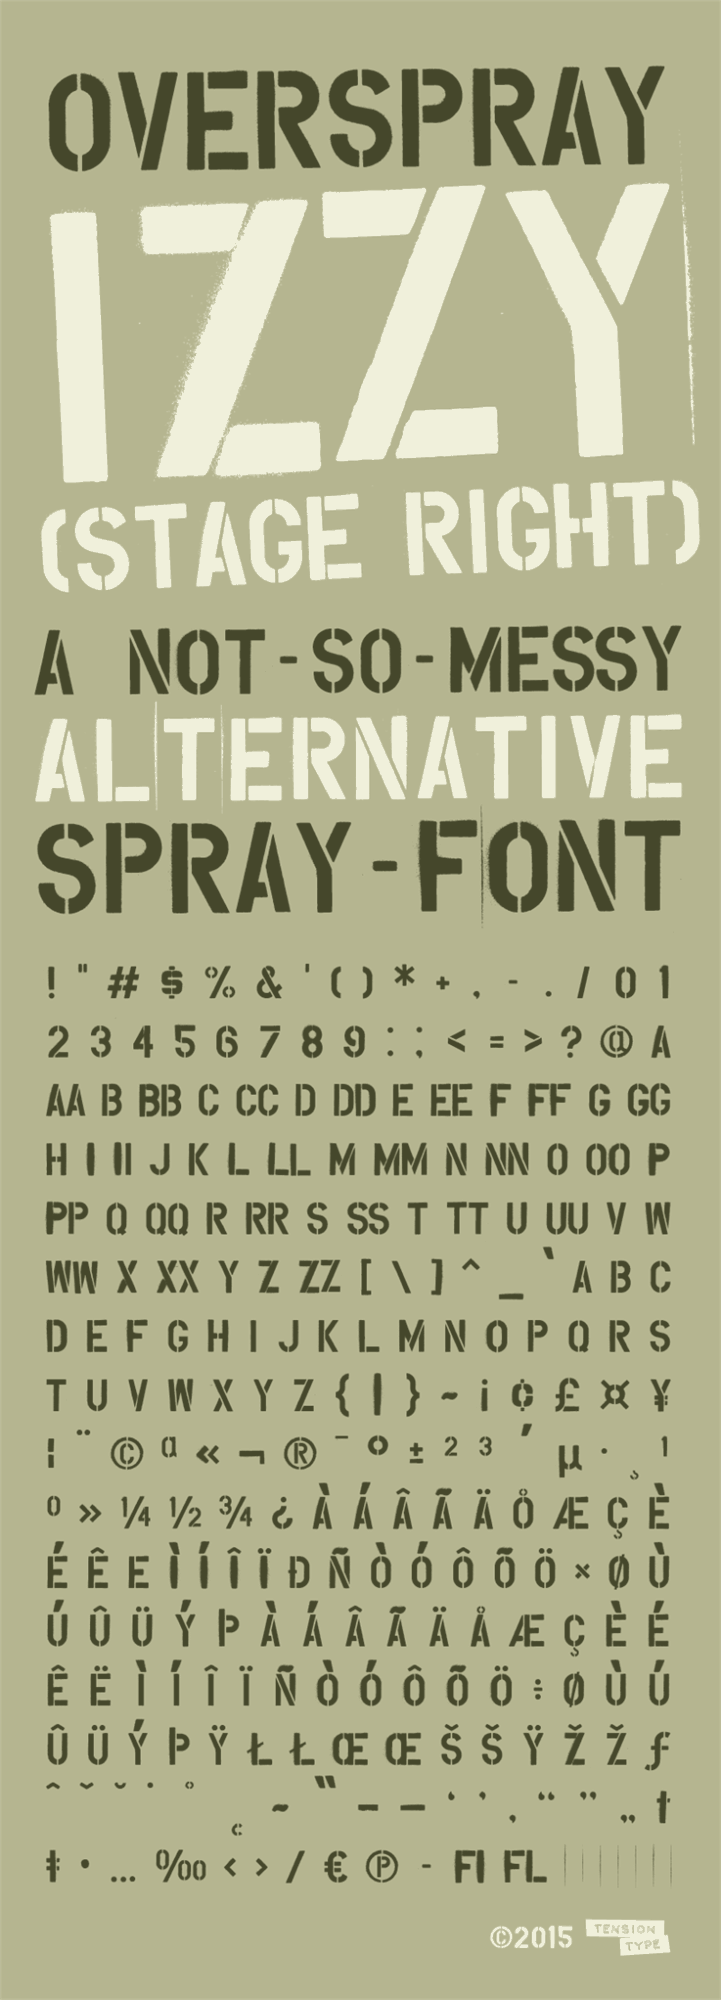 Image for Overspray font